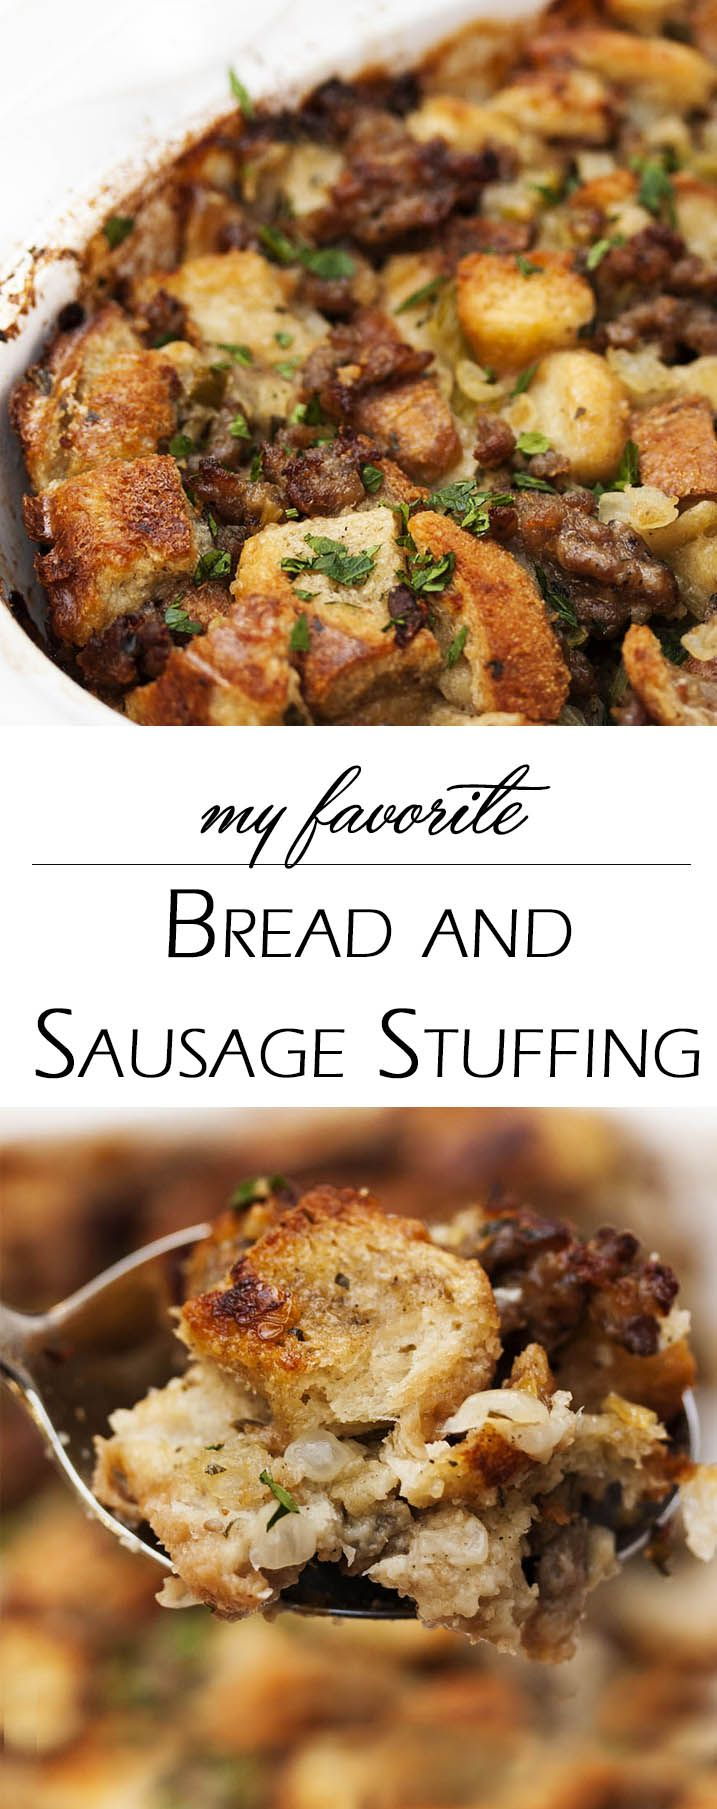 My Favorite Bread and Sausage Stuffing - This classic combination of bread, pork sausage, aromatics, and lots of sage produces a stuffing that says Thanksgiving to me. | justalittlebitofbacon.com